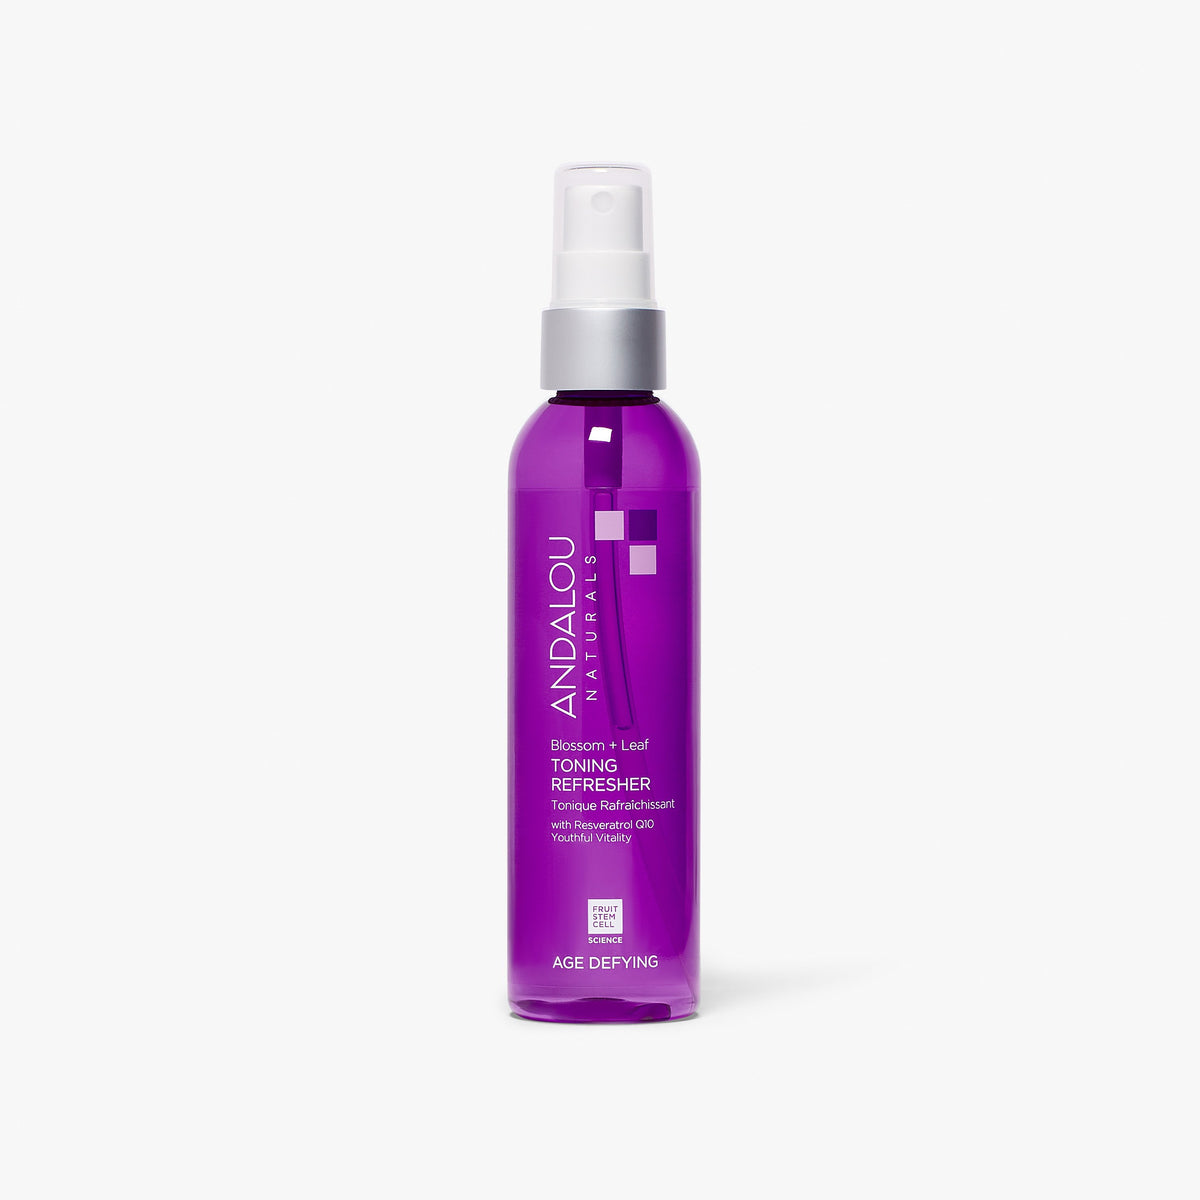 Age Defying Blossom + Leaf Toning Refresher bottle